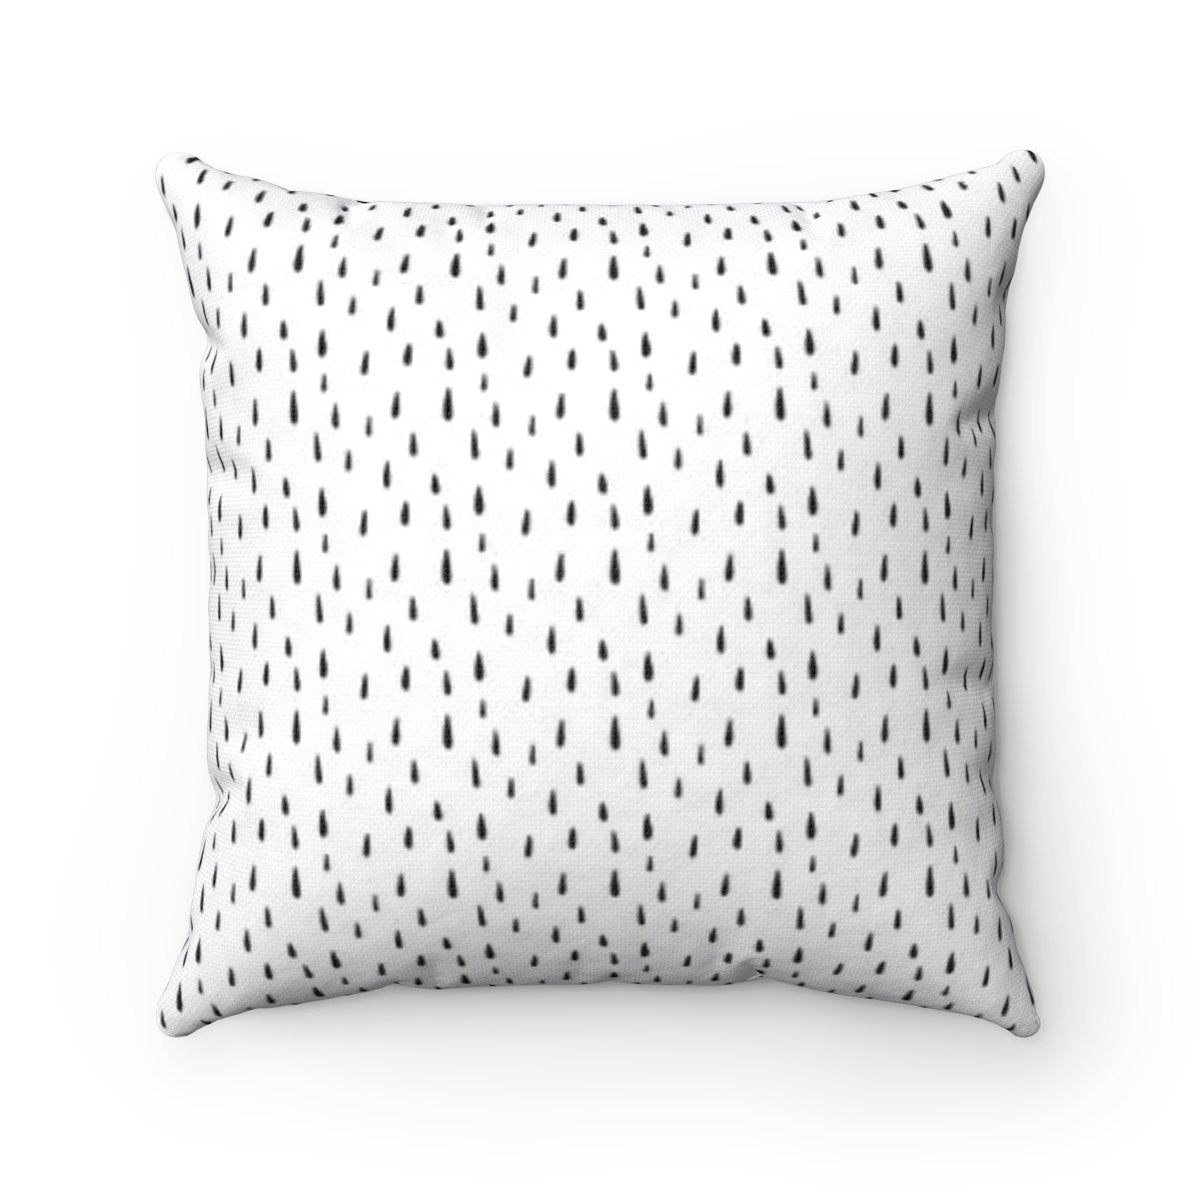 2 in 1 Black and White Polka dots decorative cushion cover-Home Decor - Decorative Accents - Pillows & Throws - Decorative Pillows-Maison d'Elite-14x14-Très Elite